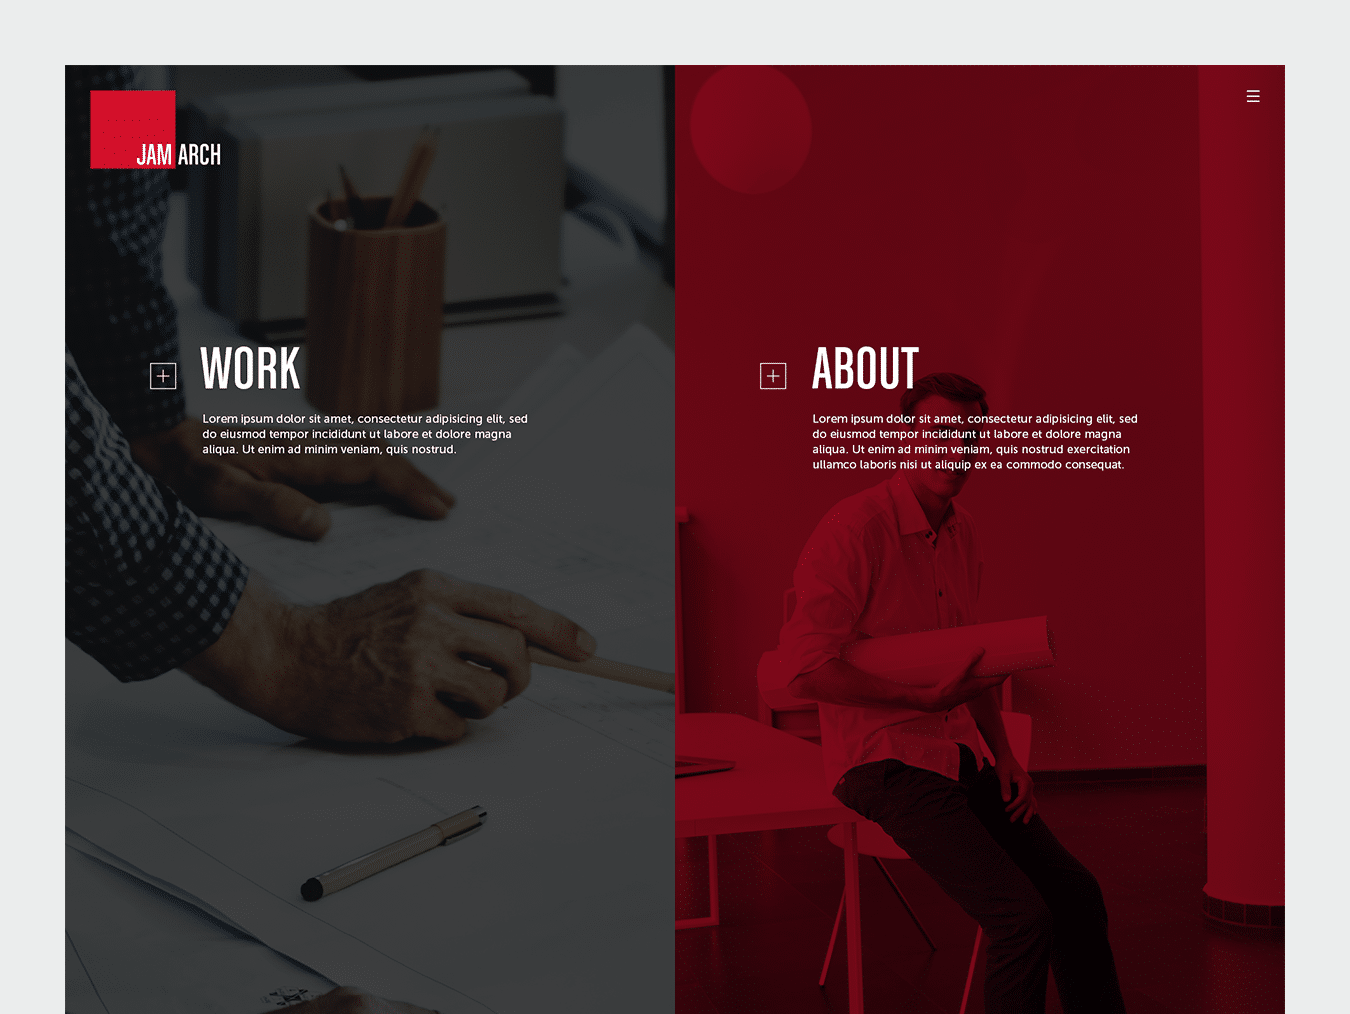 jam-arch-web-design-featured